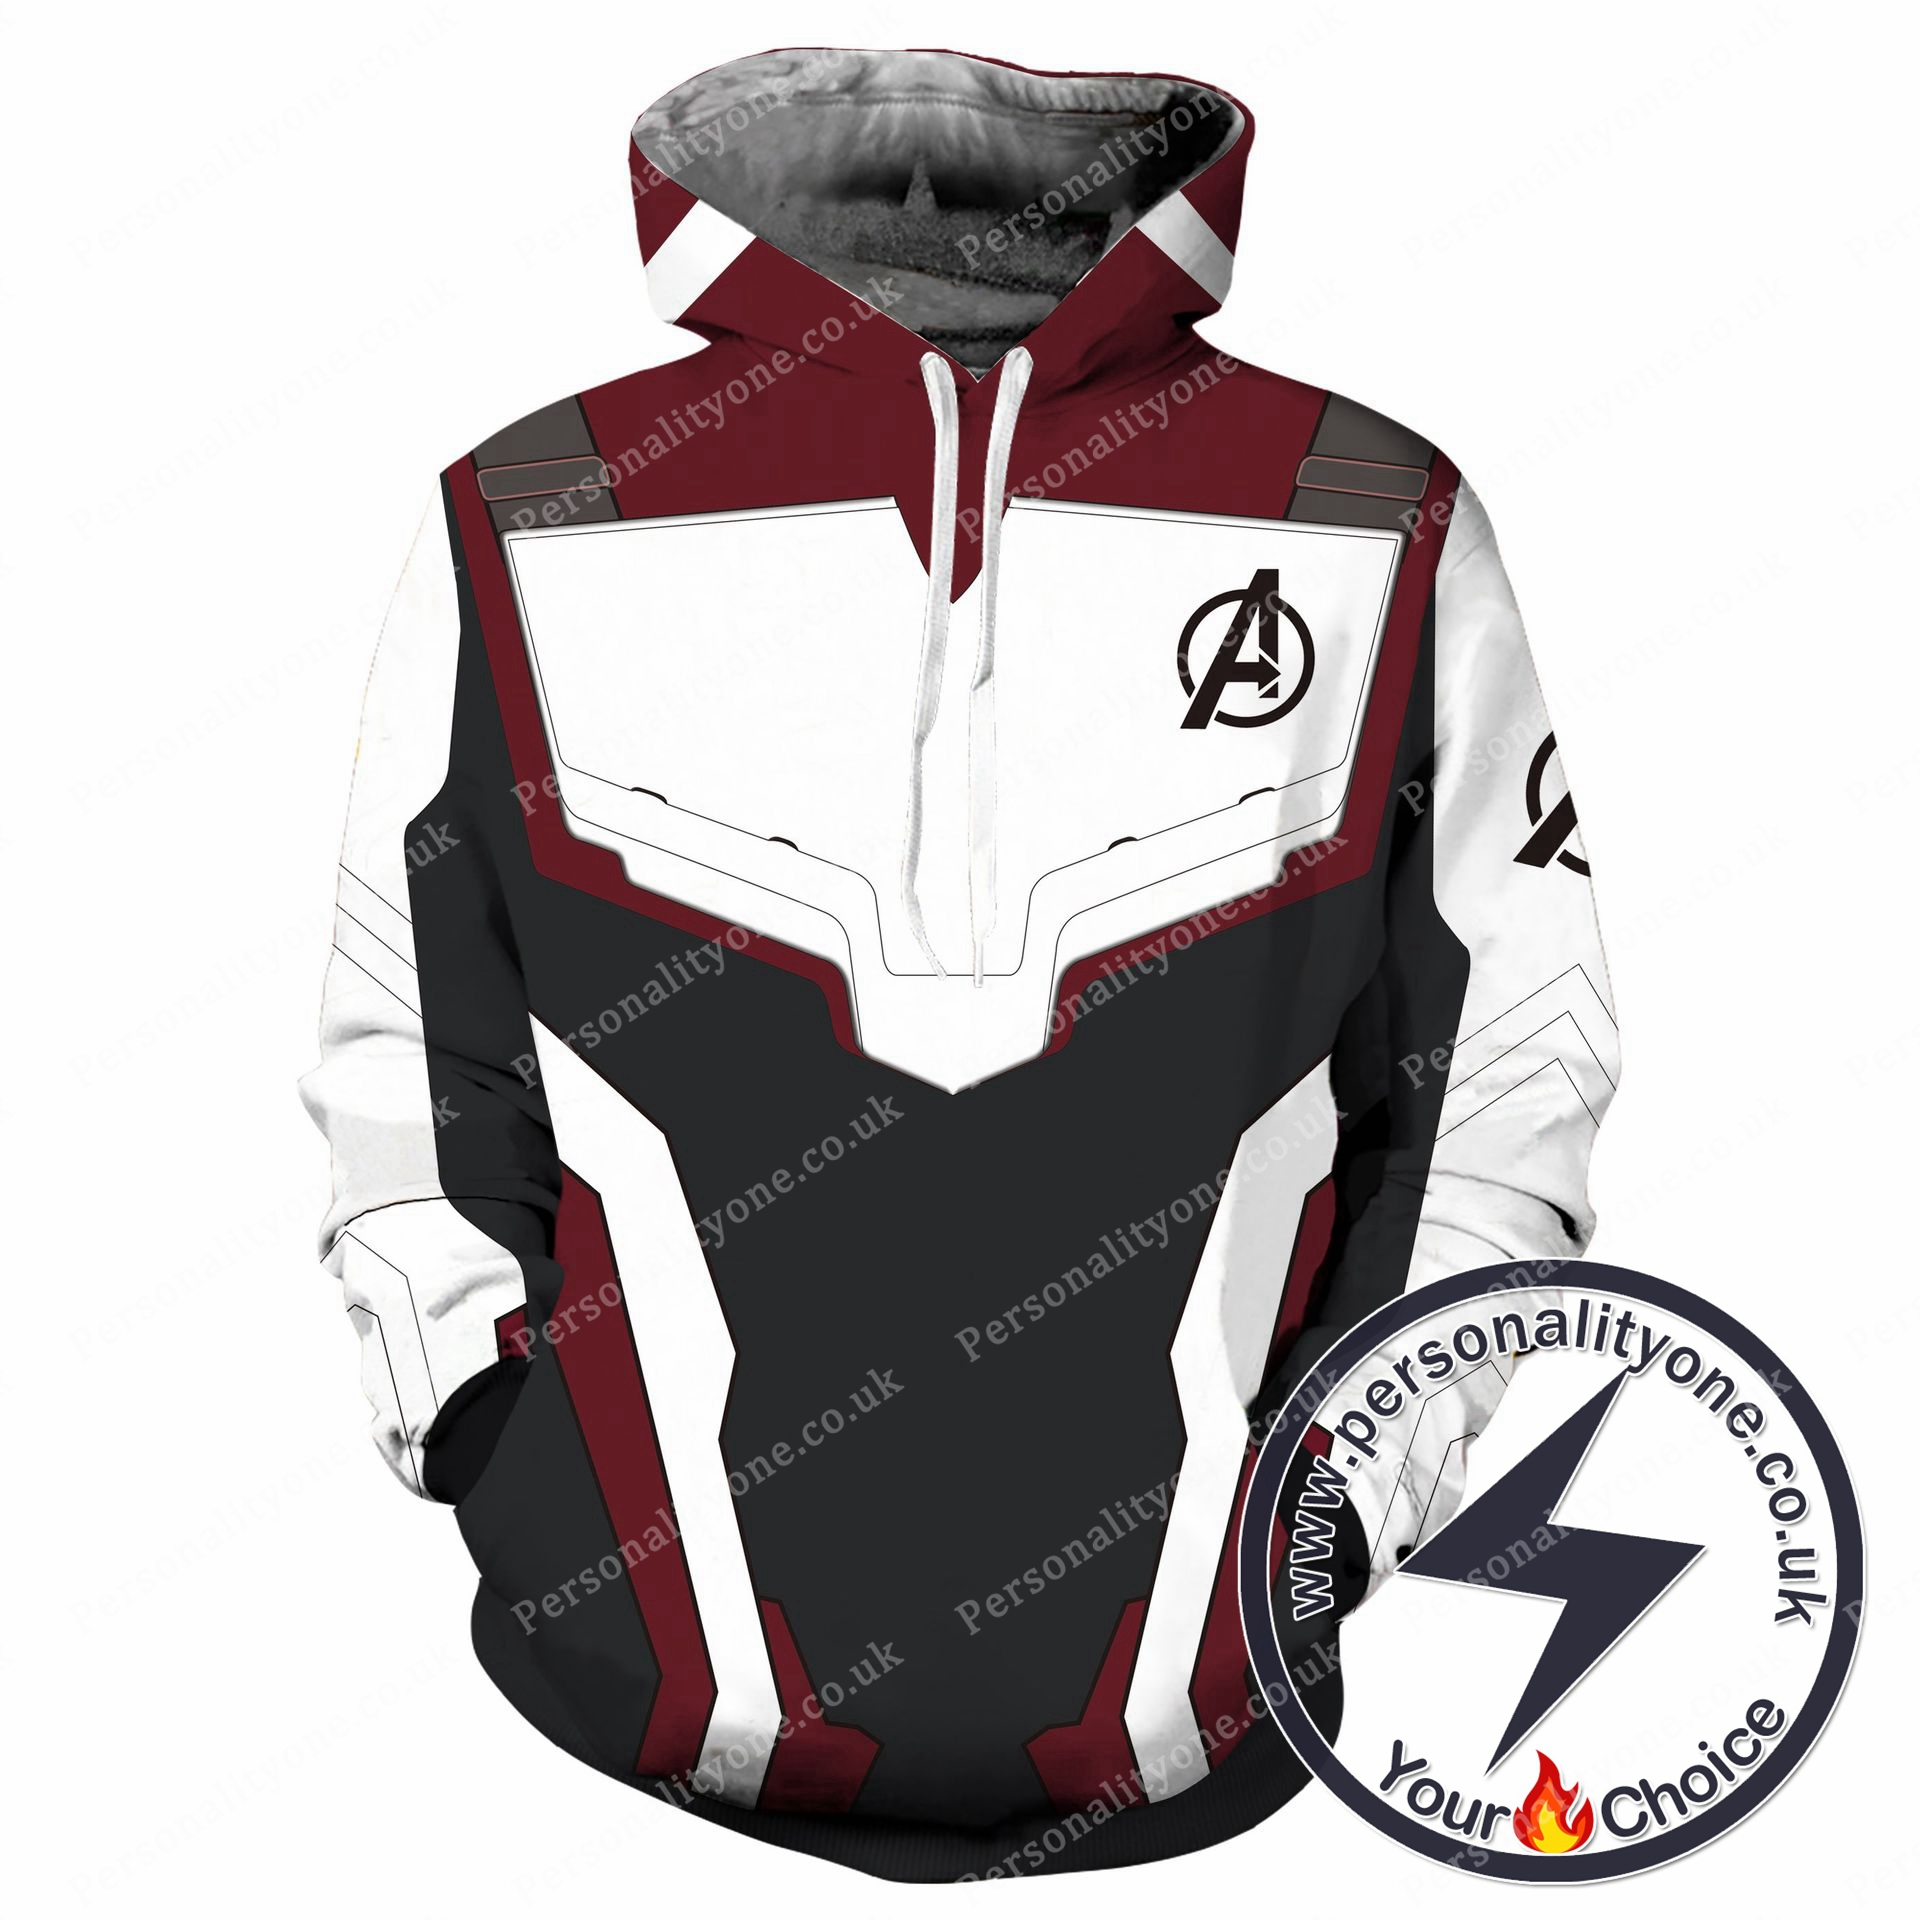 The Avengers 4 Avengers: Endgame the Advanced Tech Suits White Suit Cosplay Hoodie